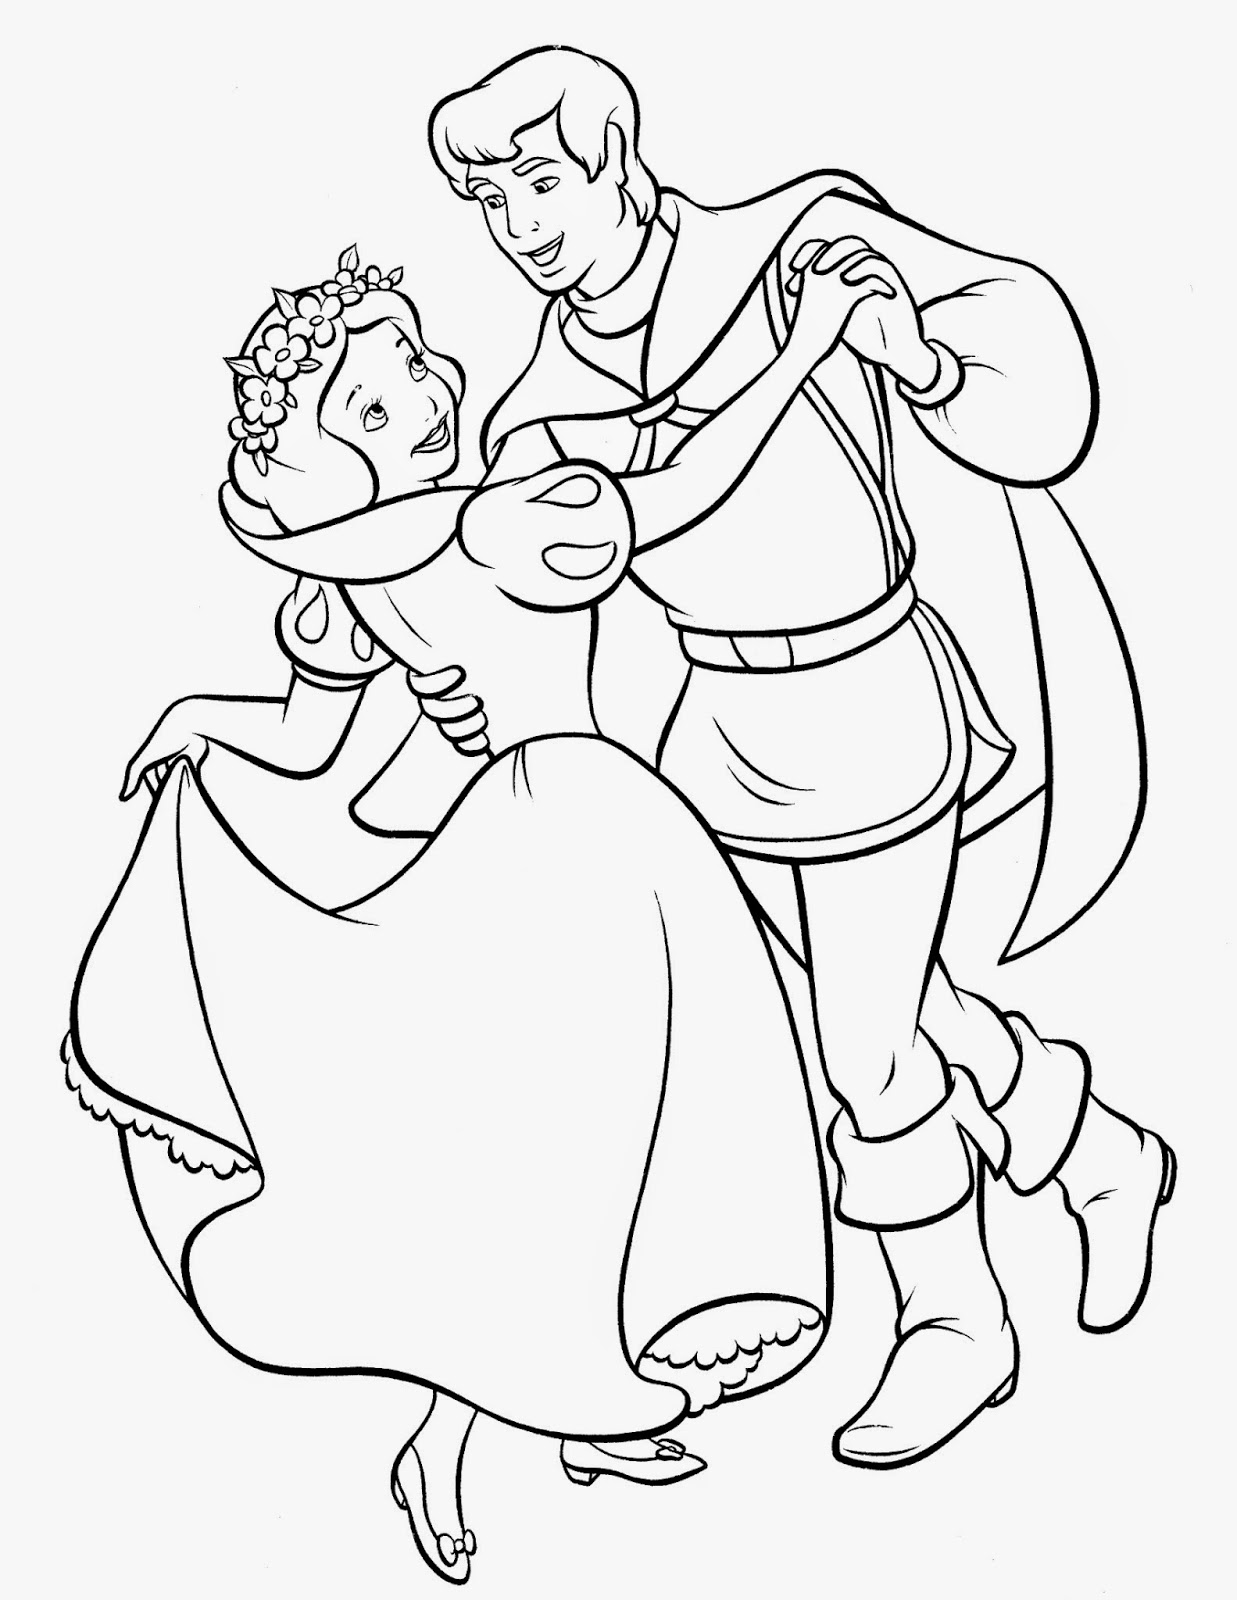 free snow white coloring pages snow white coloring pages best coloring pages for kids pages free white snow coloring